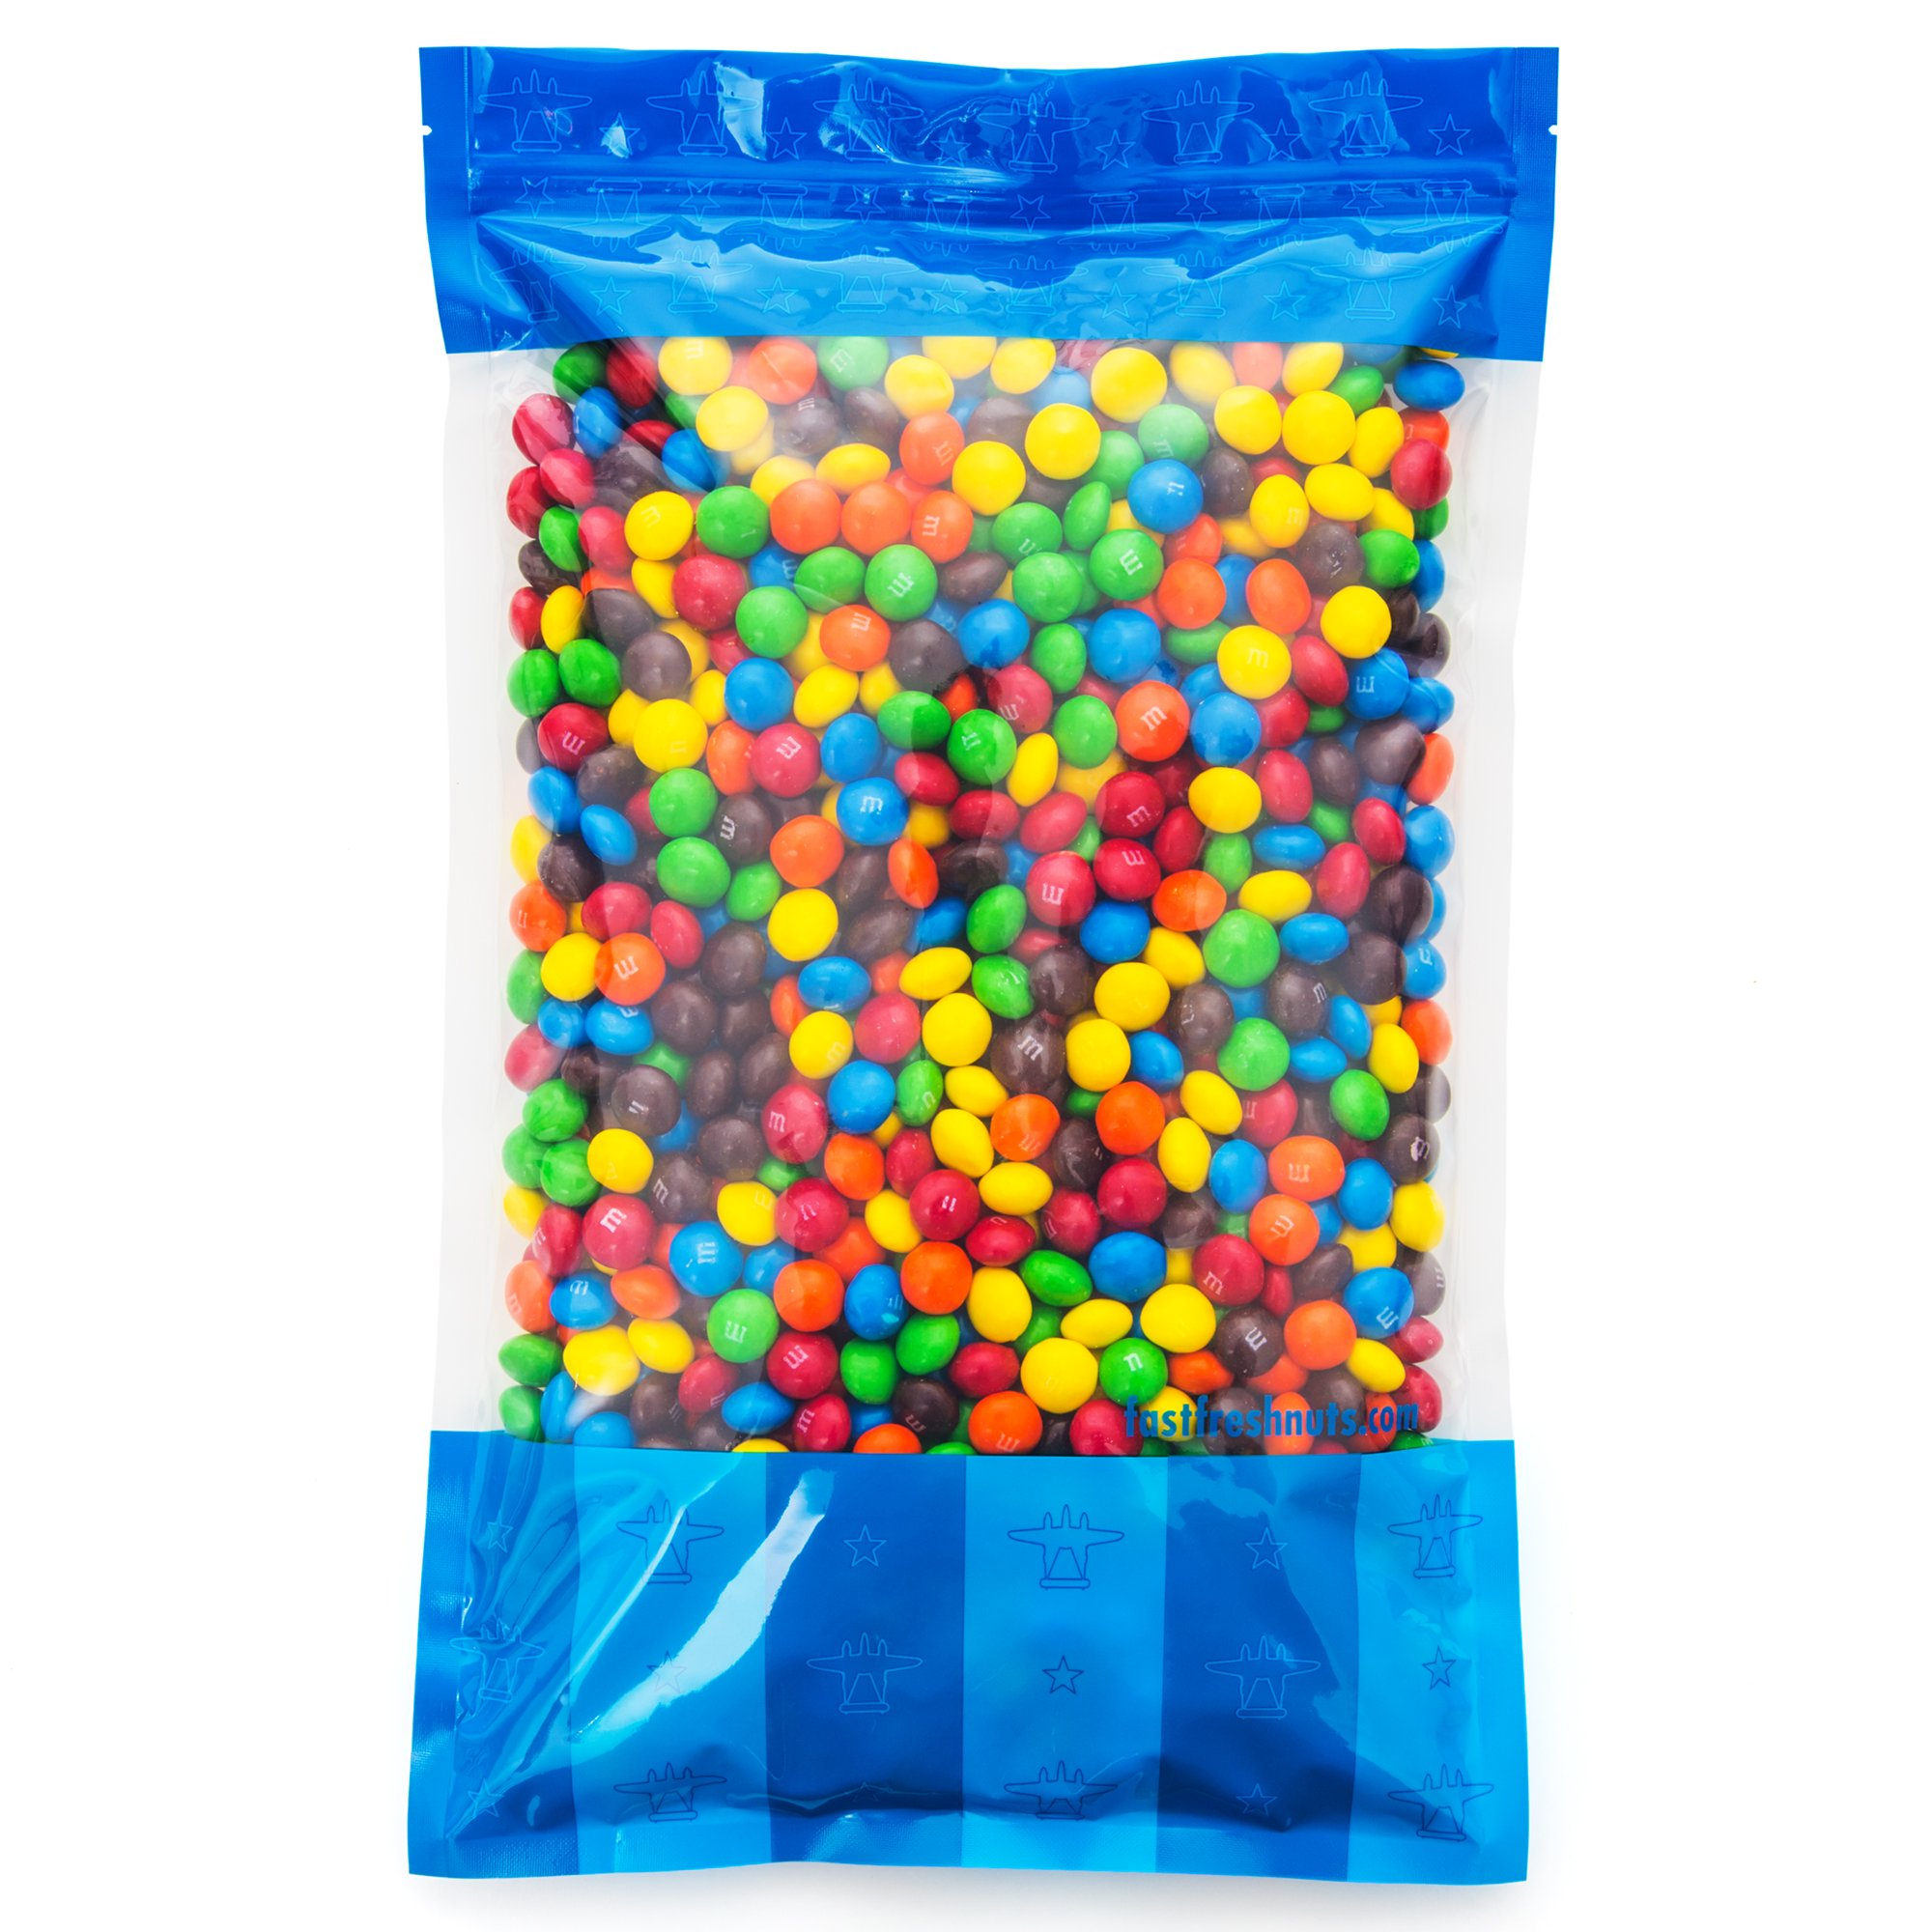 Bulk M&M's Plain Milk Chocolate in a Resealable Bomber Bag - Guaranteed 7 lbs - Fresh, Tasty Treats - Great for Office Candy Bowls - Wholesale - Cooking - Baking - Vending - Holidays - Parties by Fast Fresh Nuts